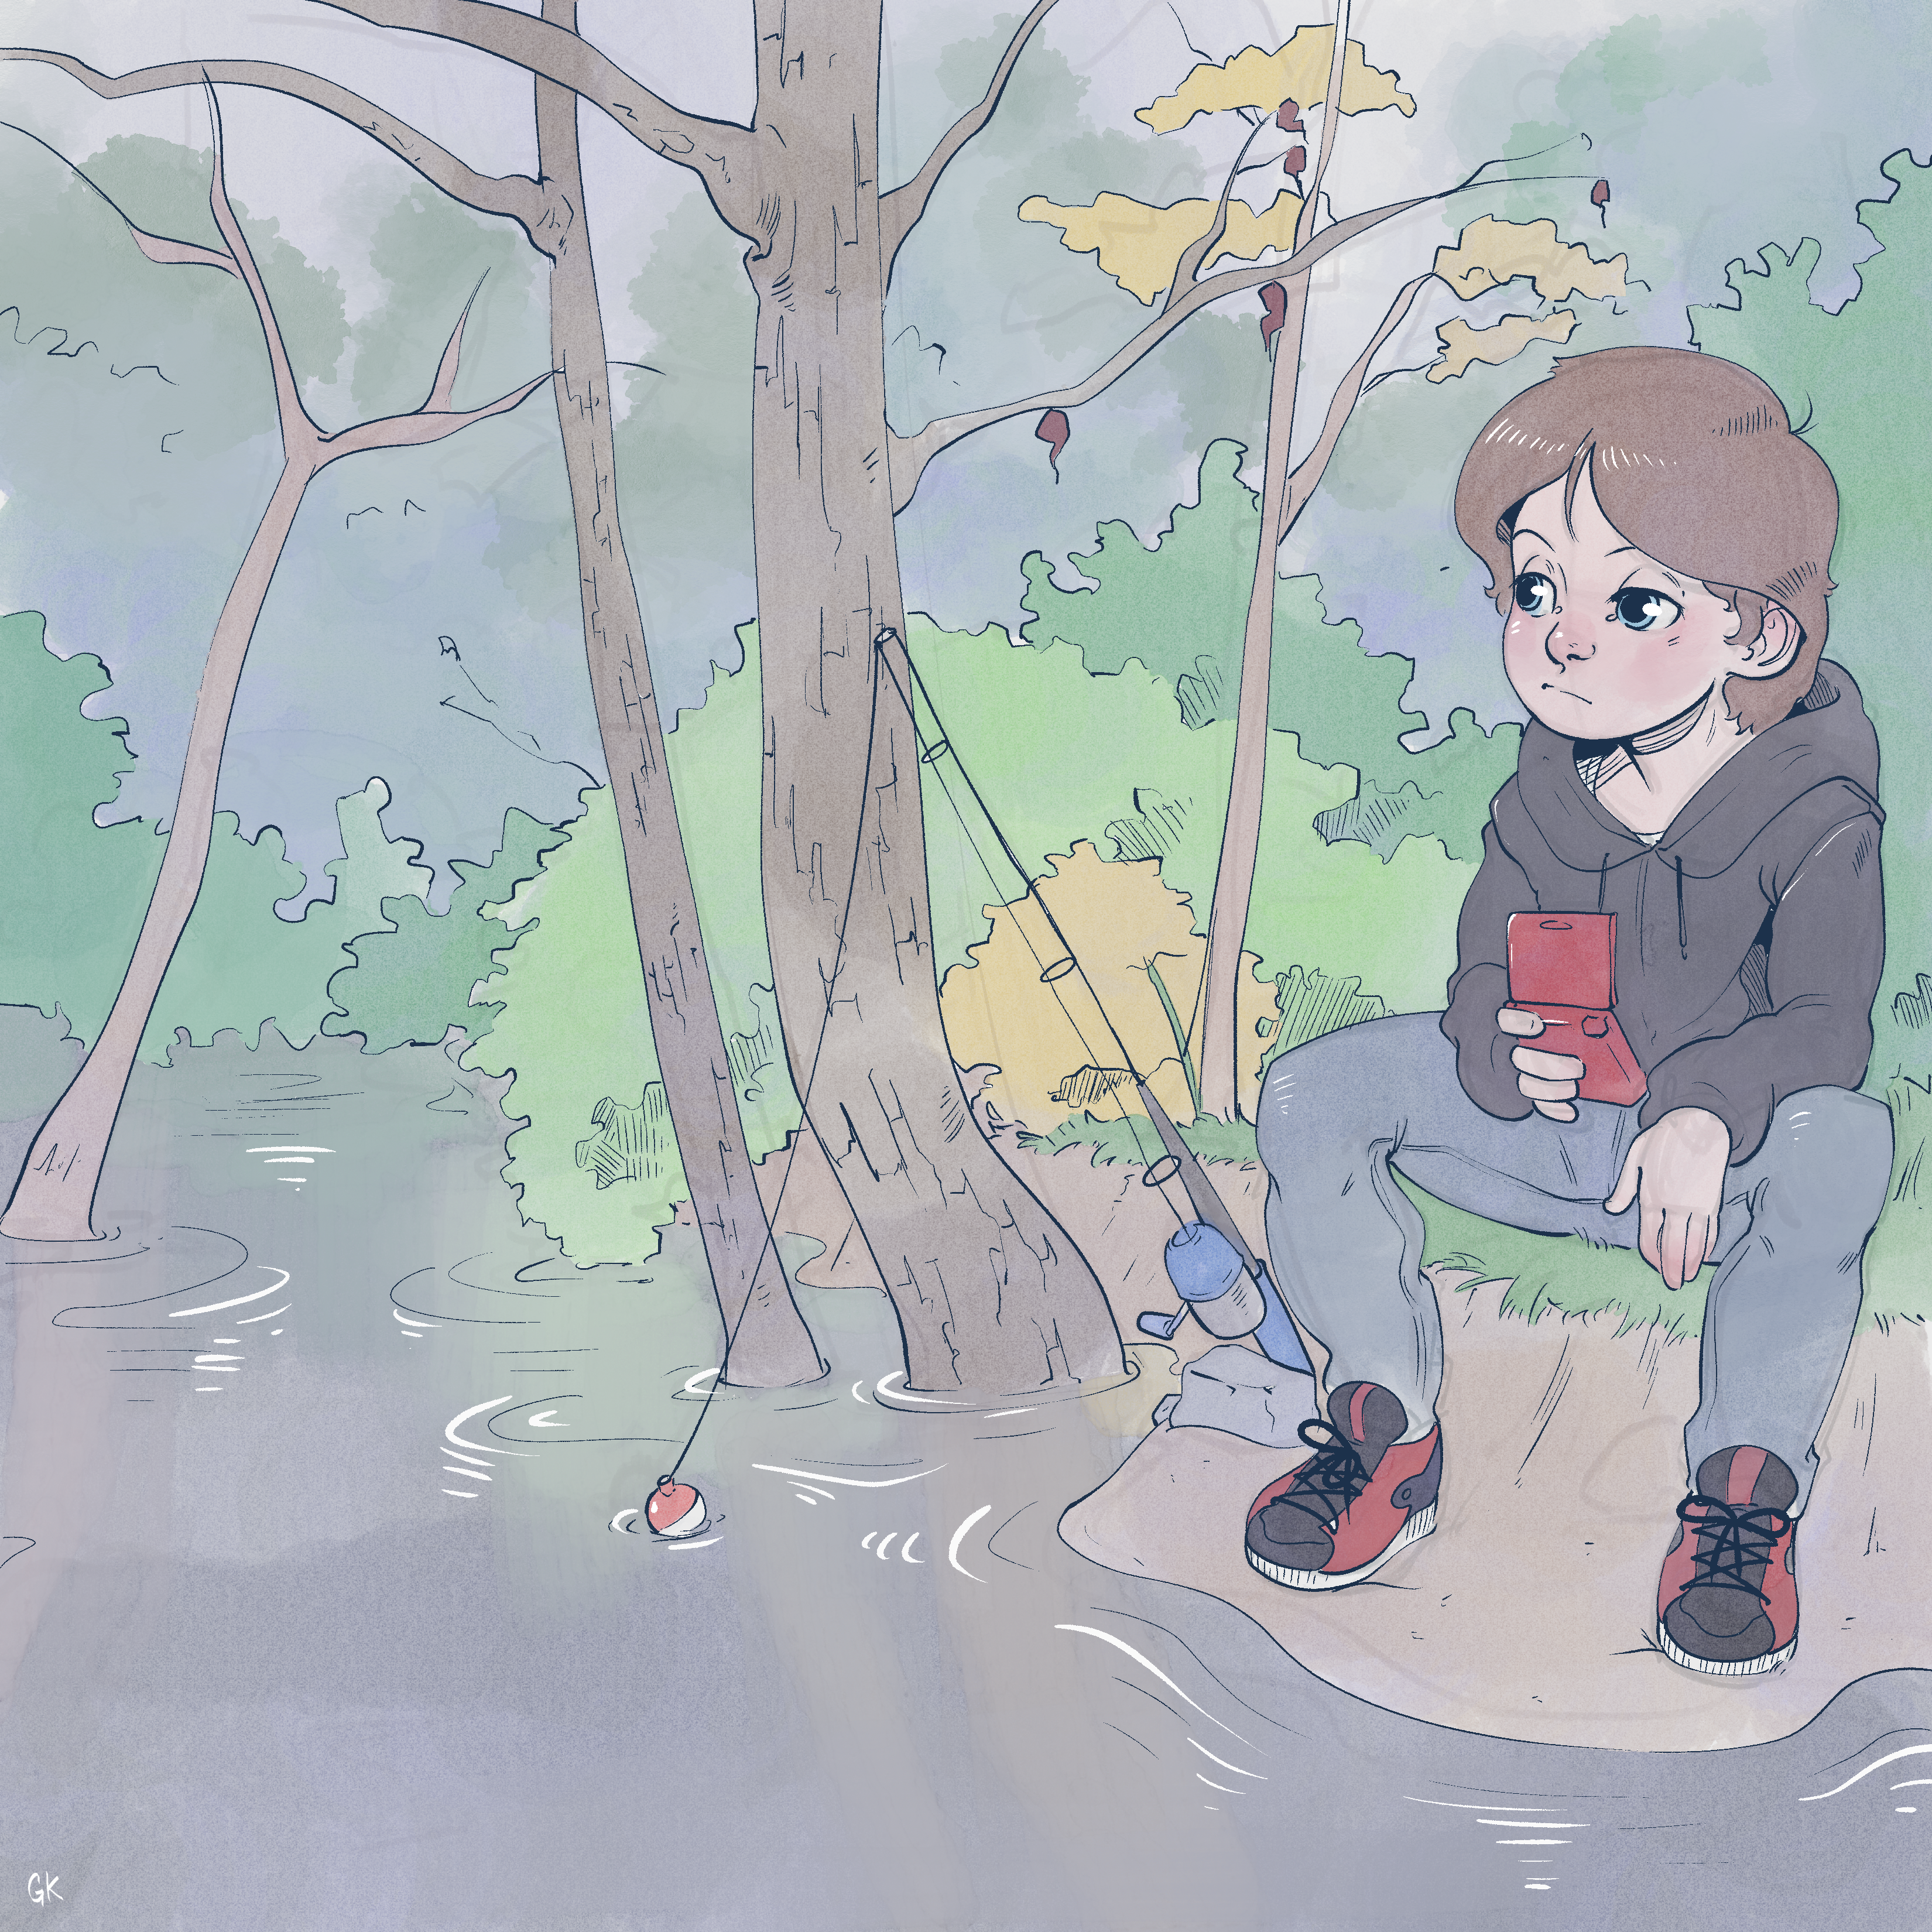 Gameboy by the Creek